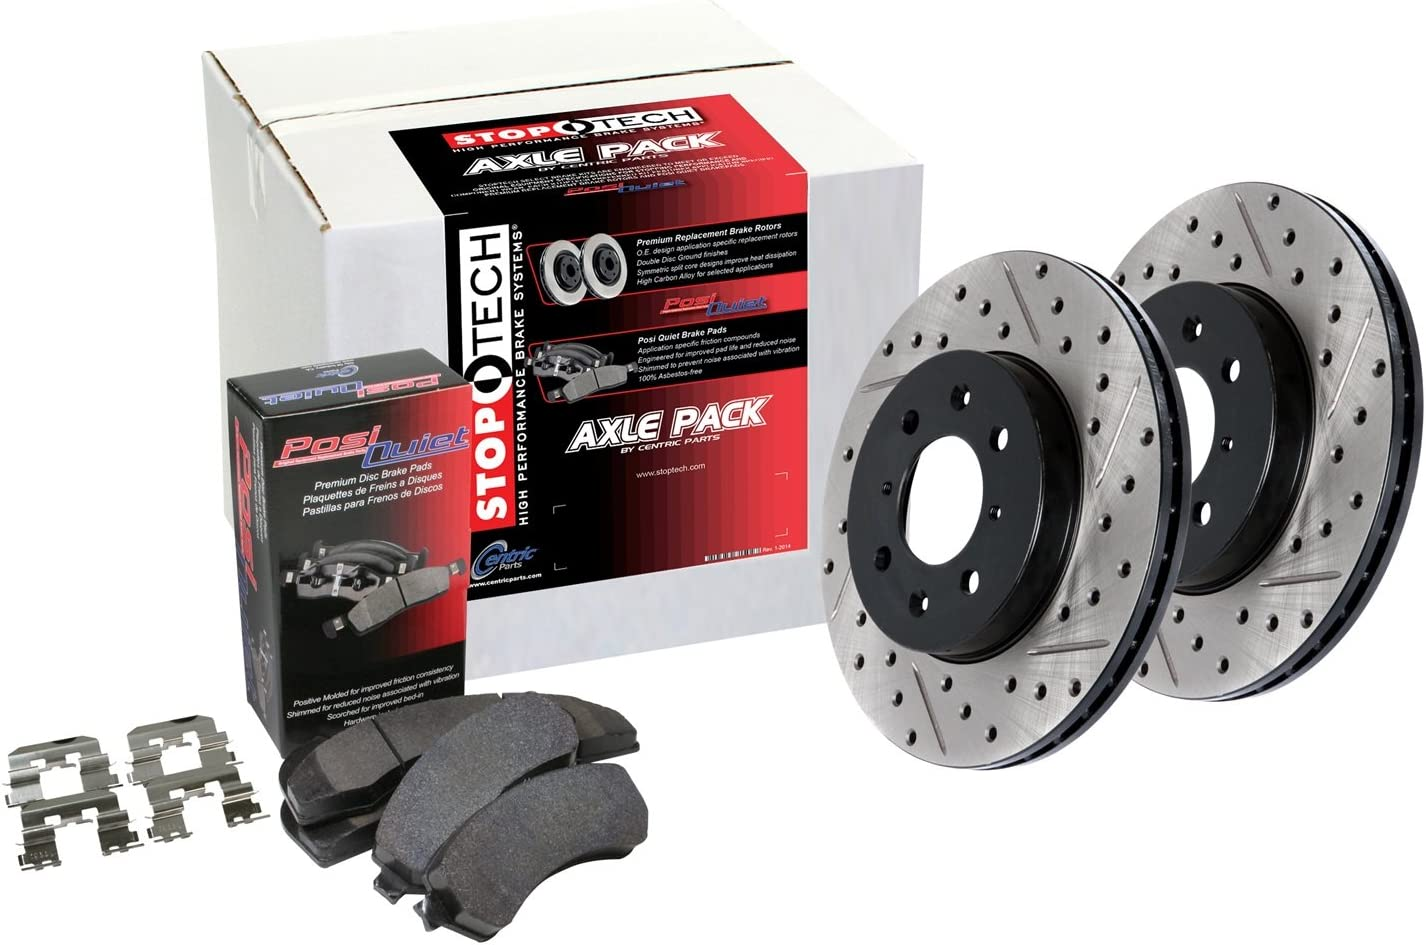 Limited price StopTech 938.47506 Street Axle Pack store Slotted Rear Bra and Drilled